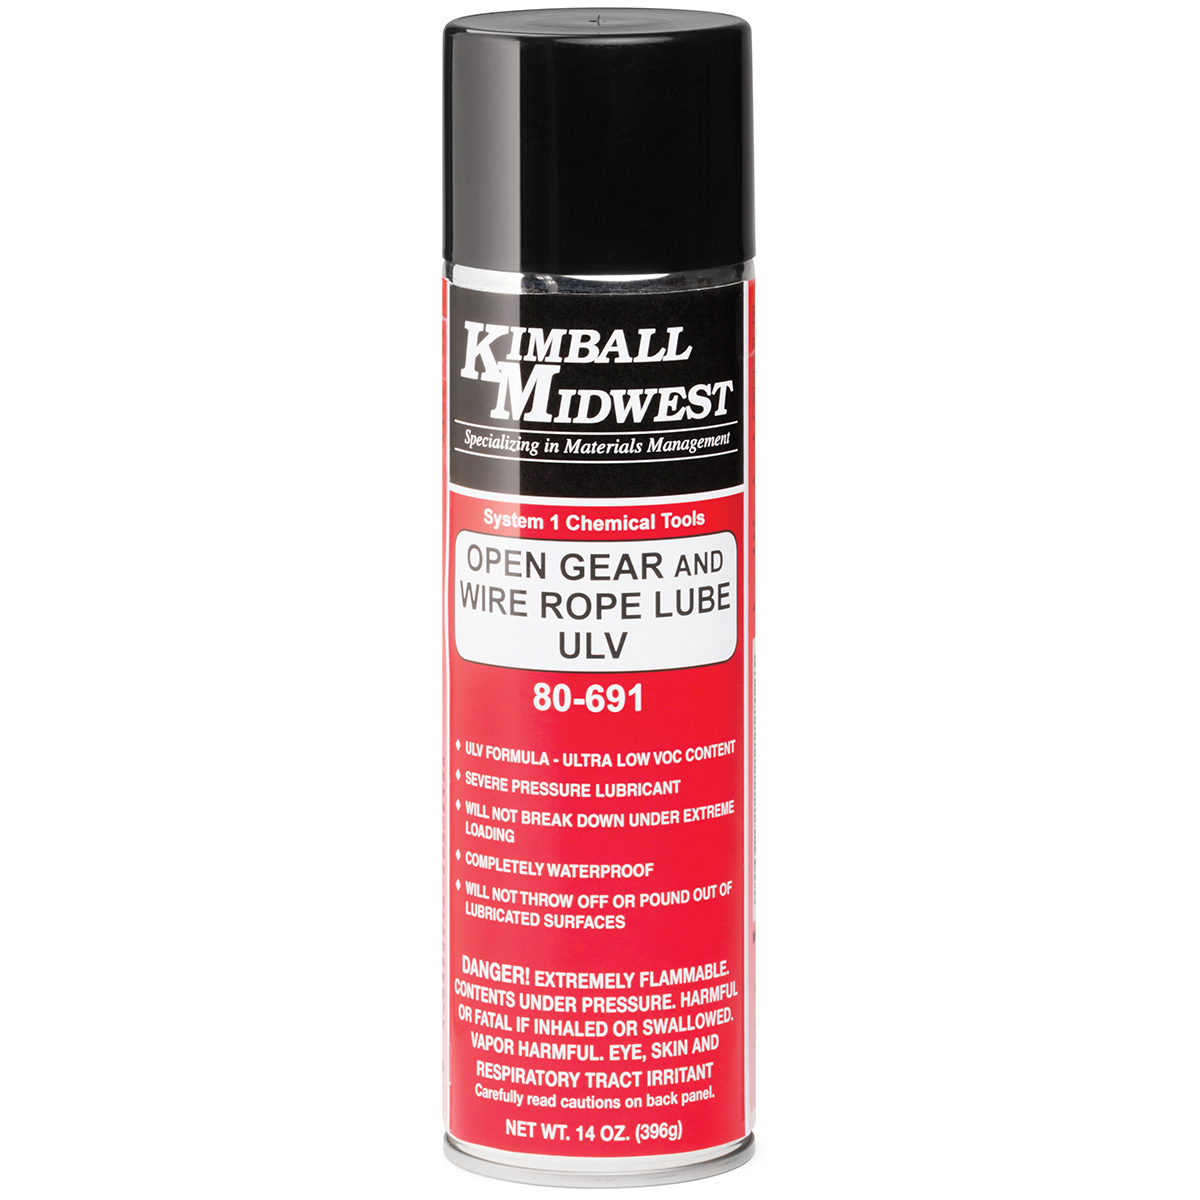 Open Gear & Wire Rope Lube ULV - Kimball Midwest